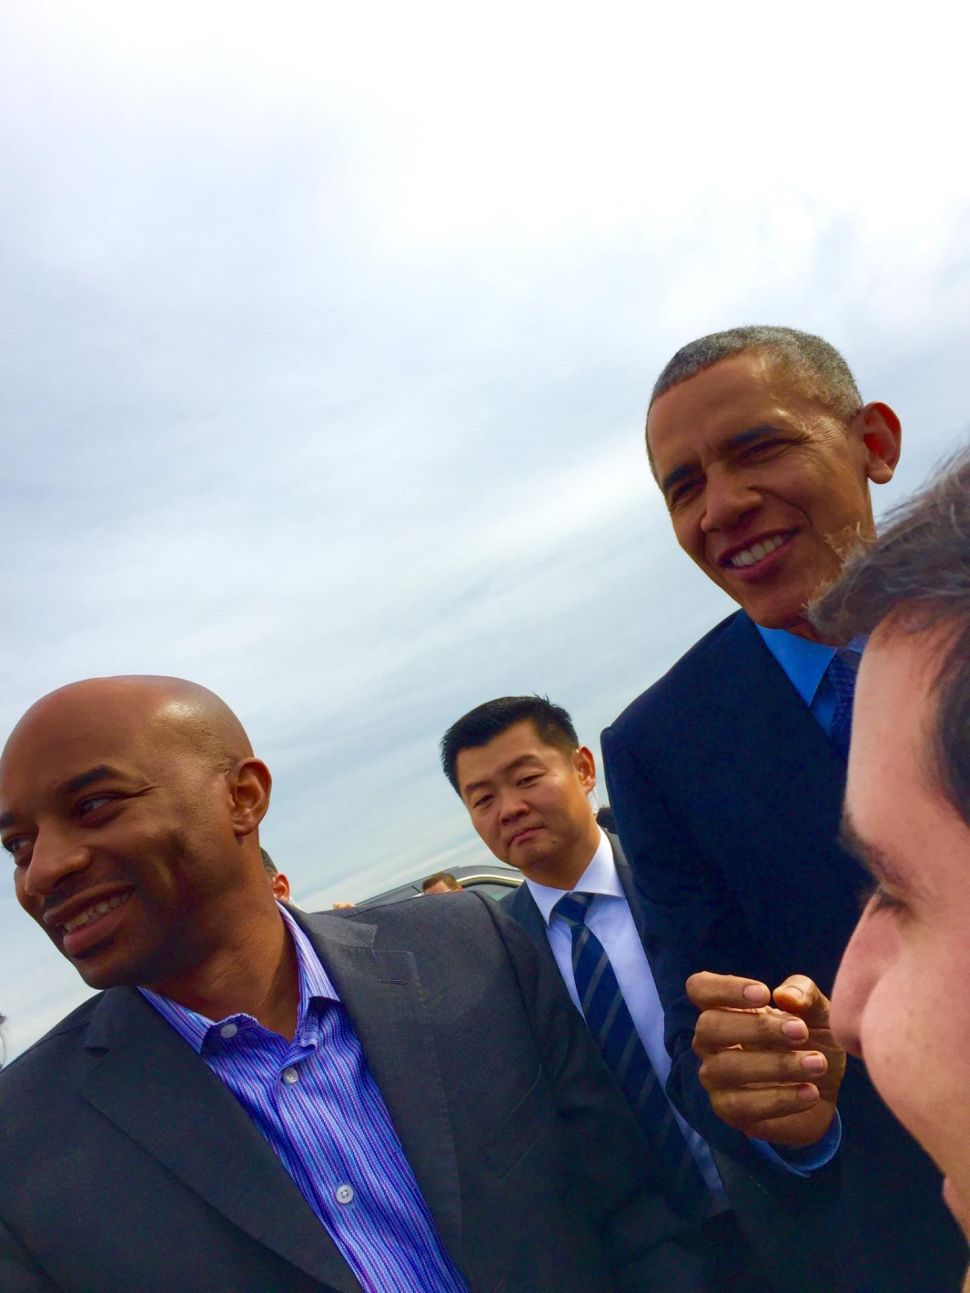 PolitickerNJ Scrapbook: Air Force One Drops in on Butler